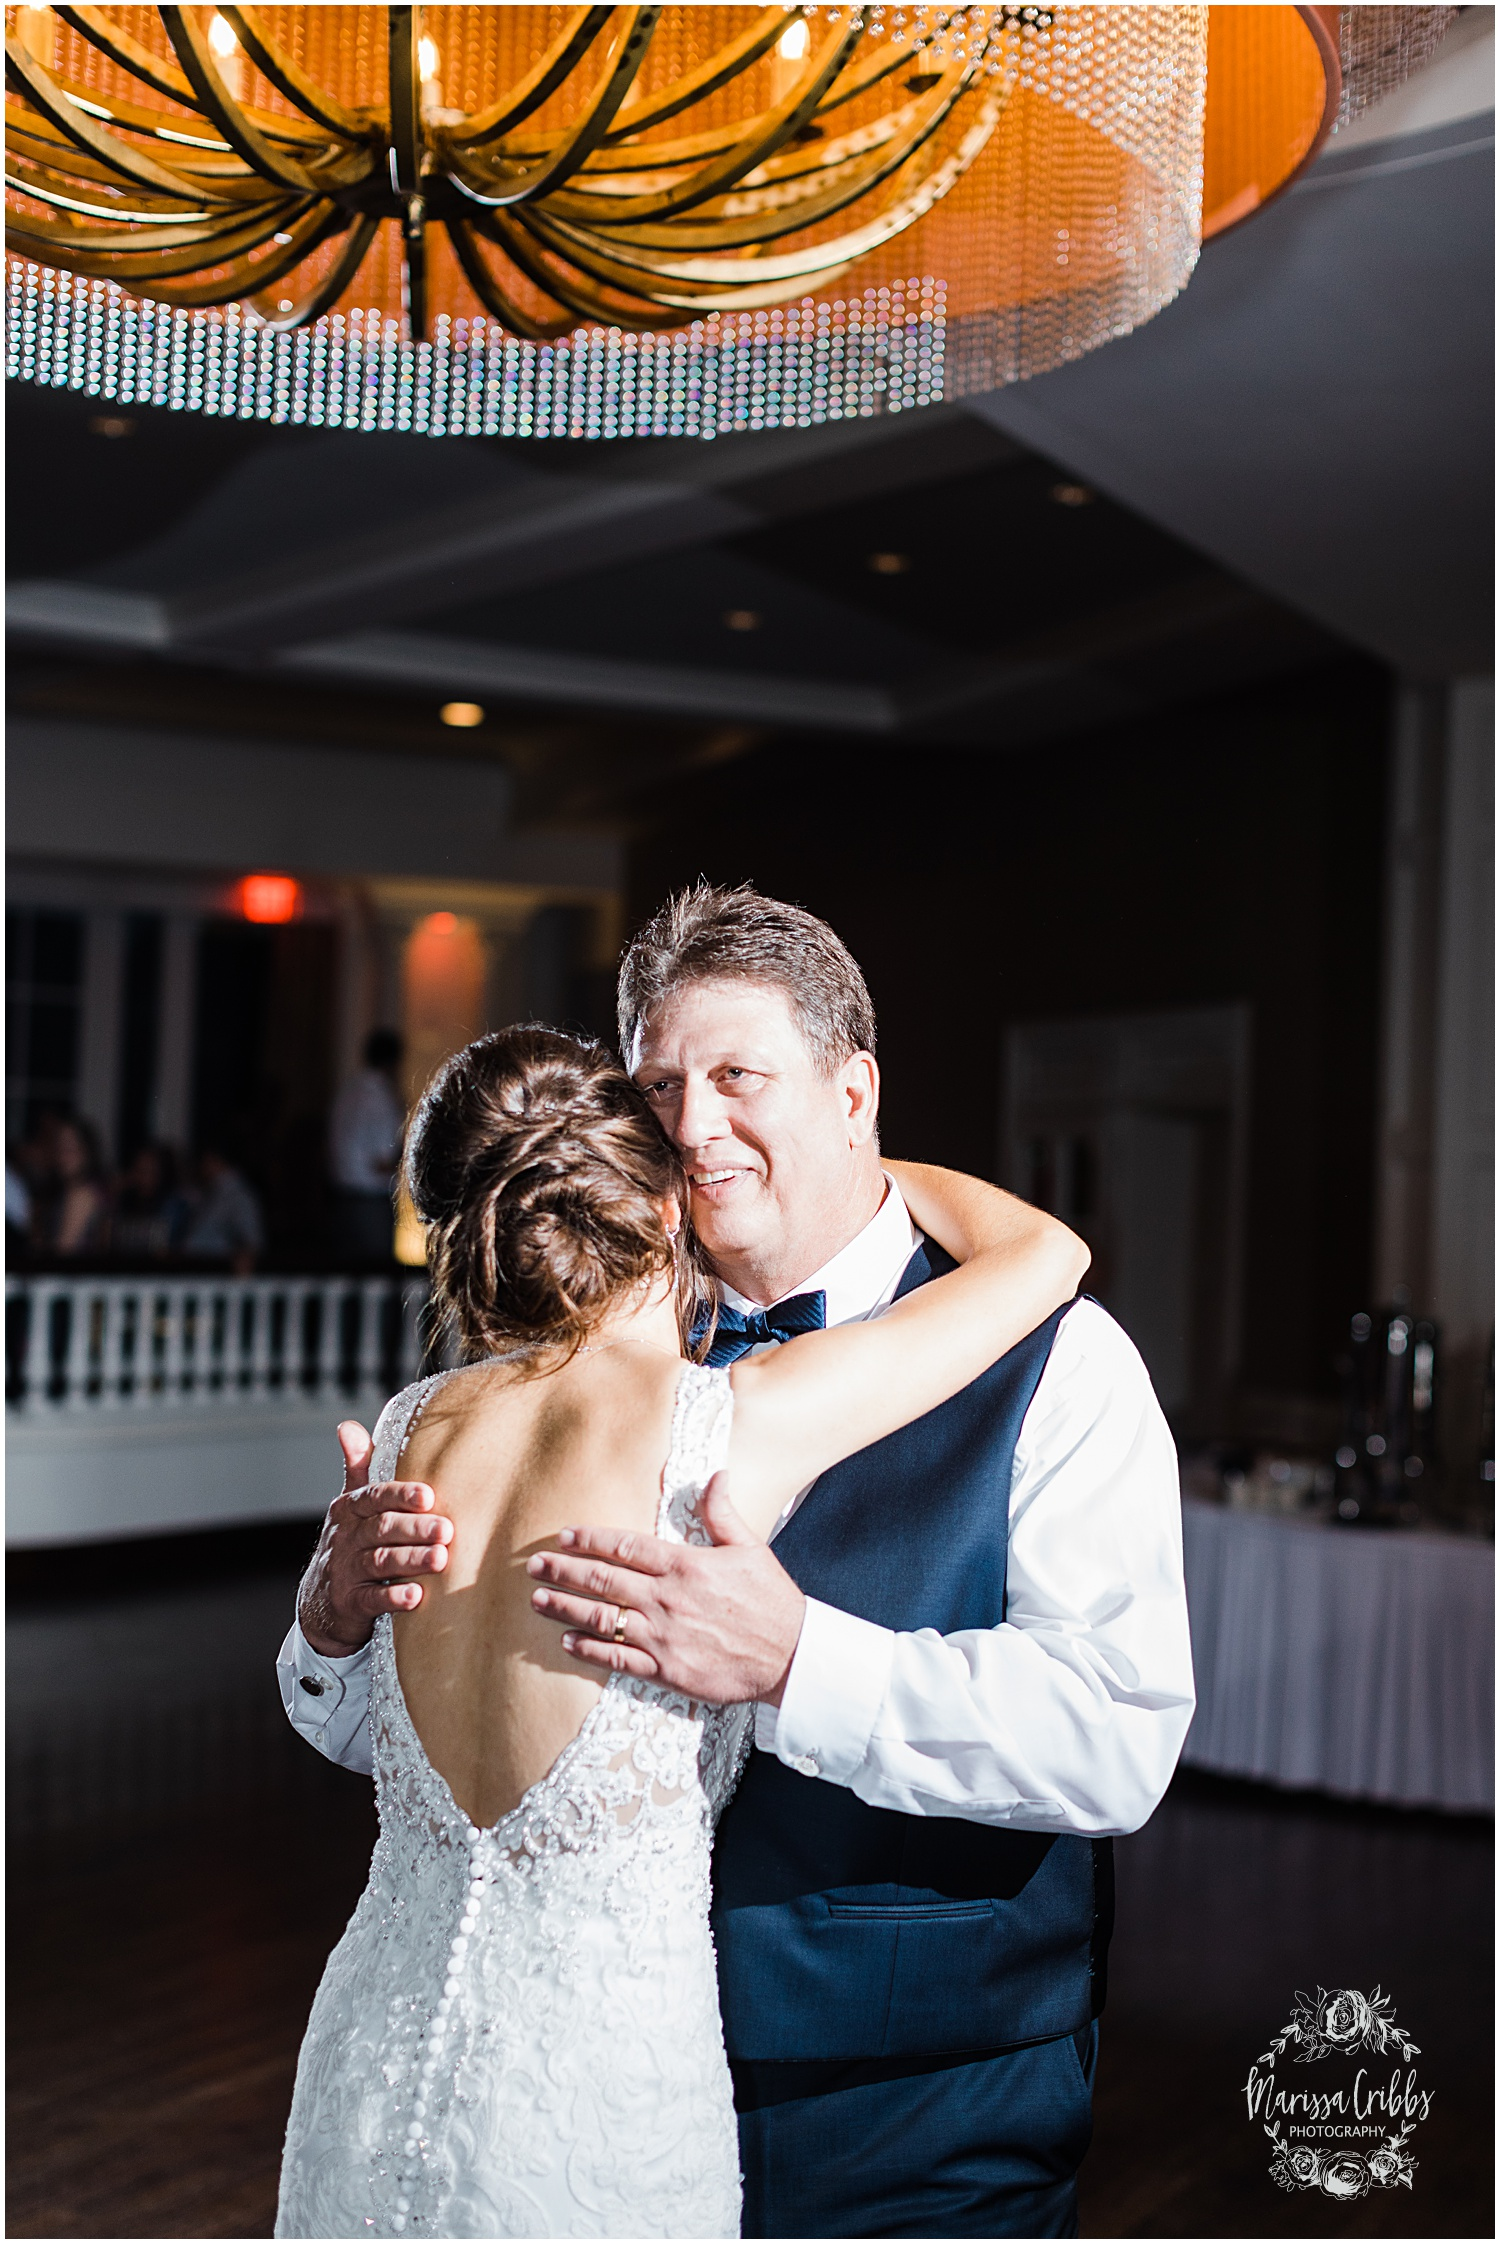 MEGAN & DEREK WEDDING BLOG | MARISSA CRIBBS PHOTOGRAPHY_8231.jpg